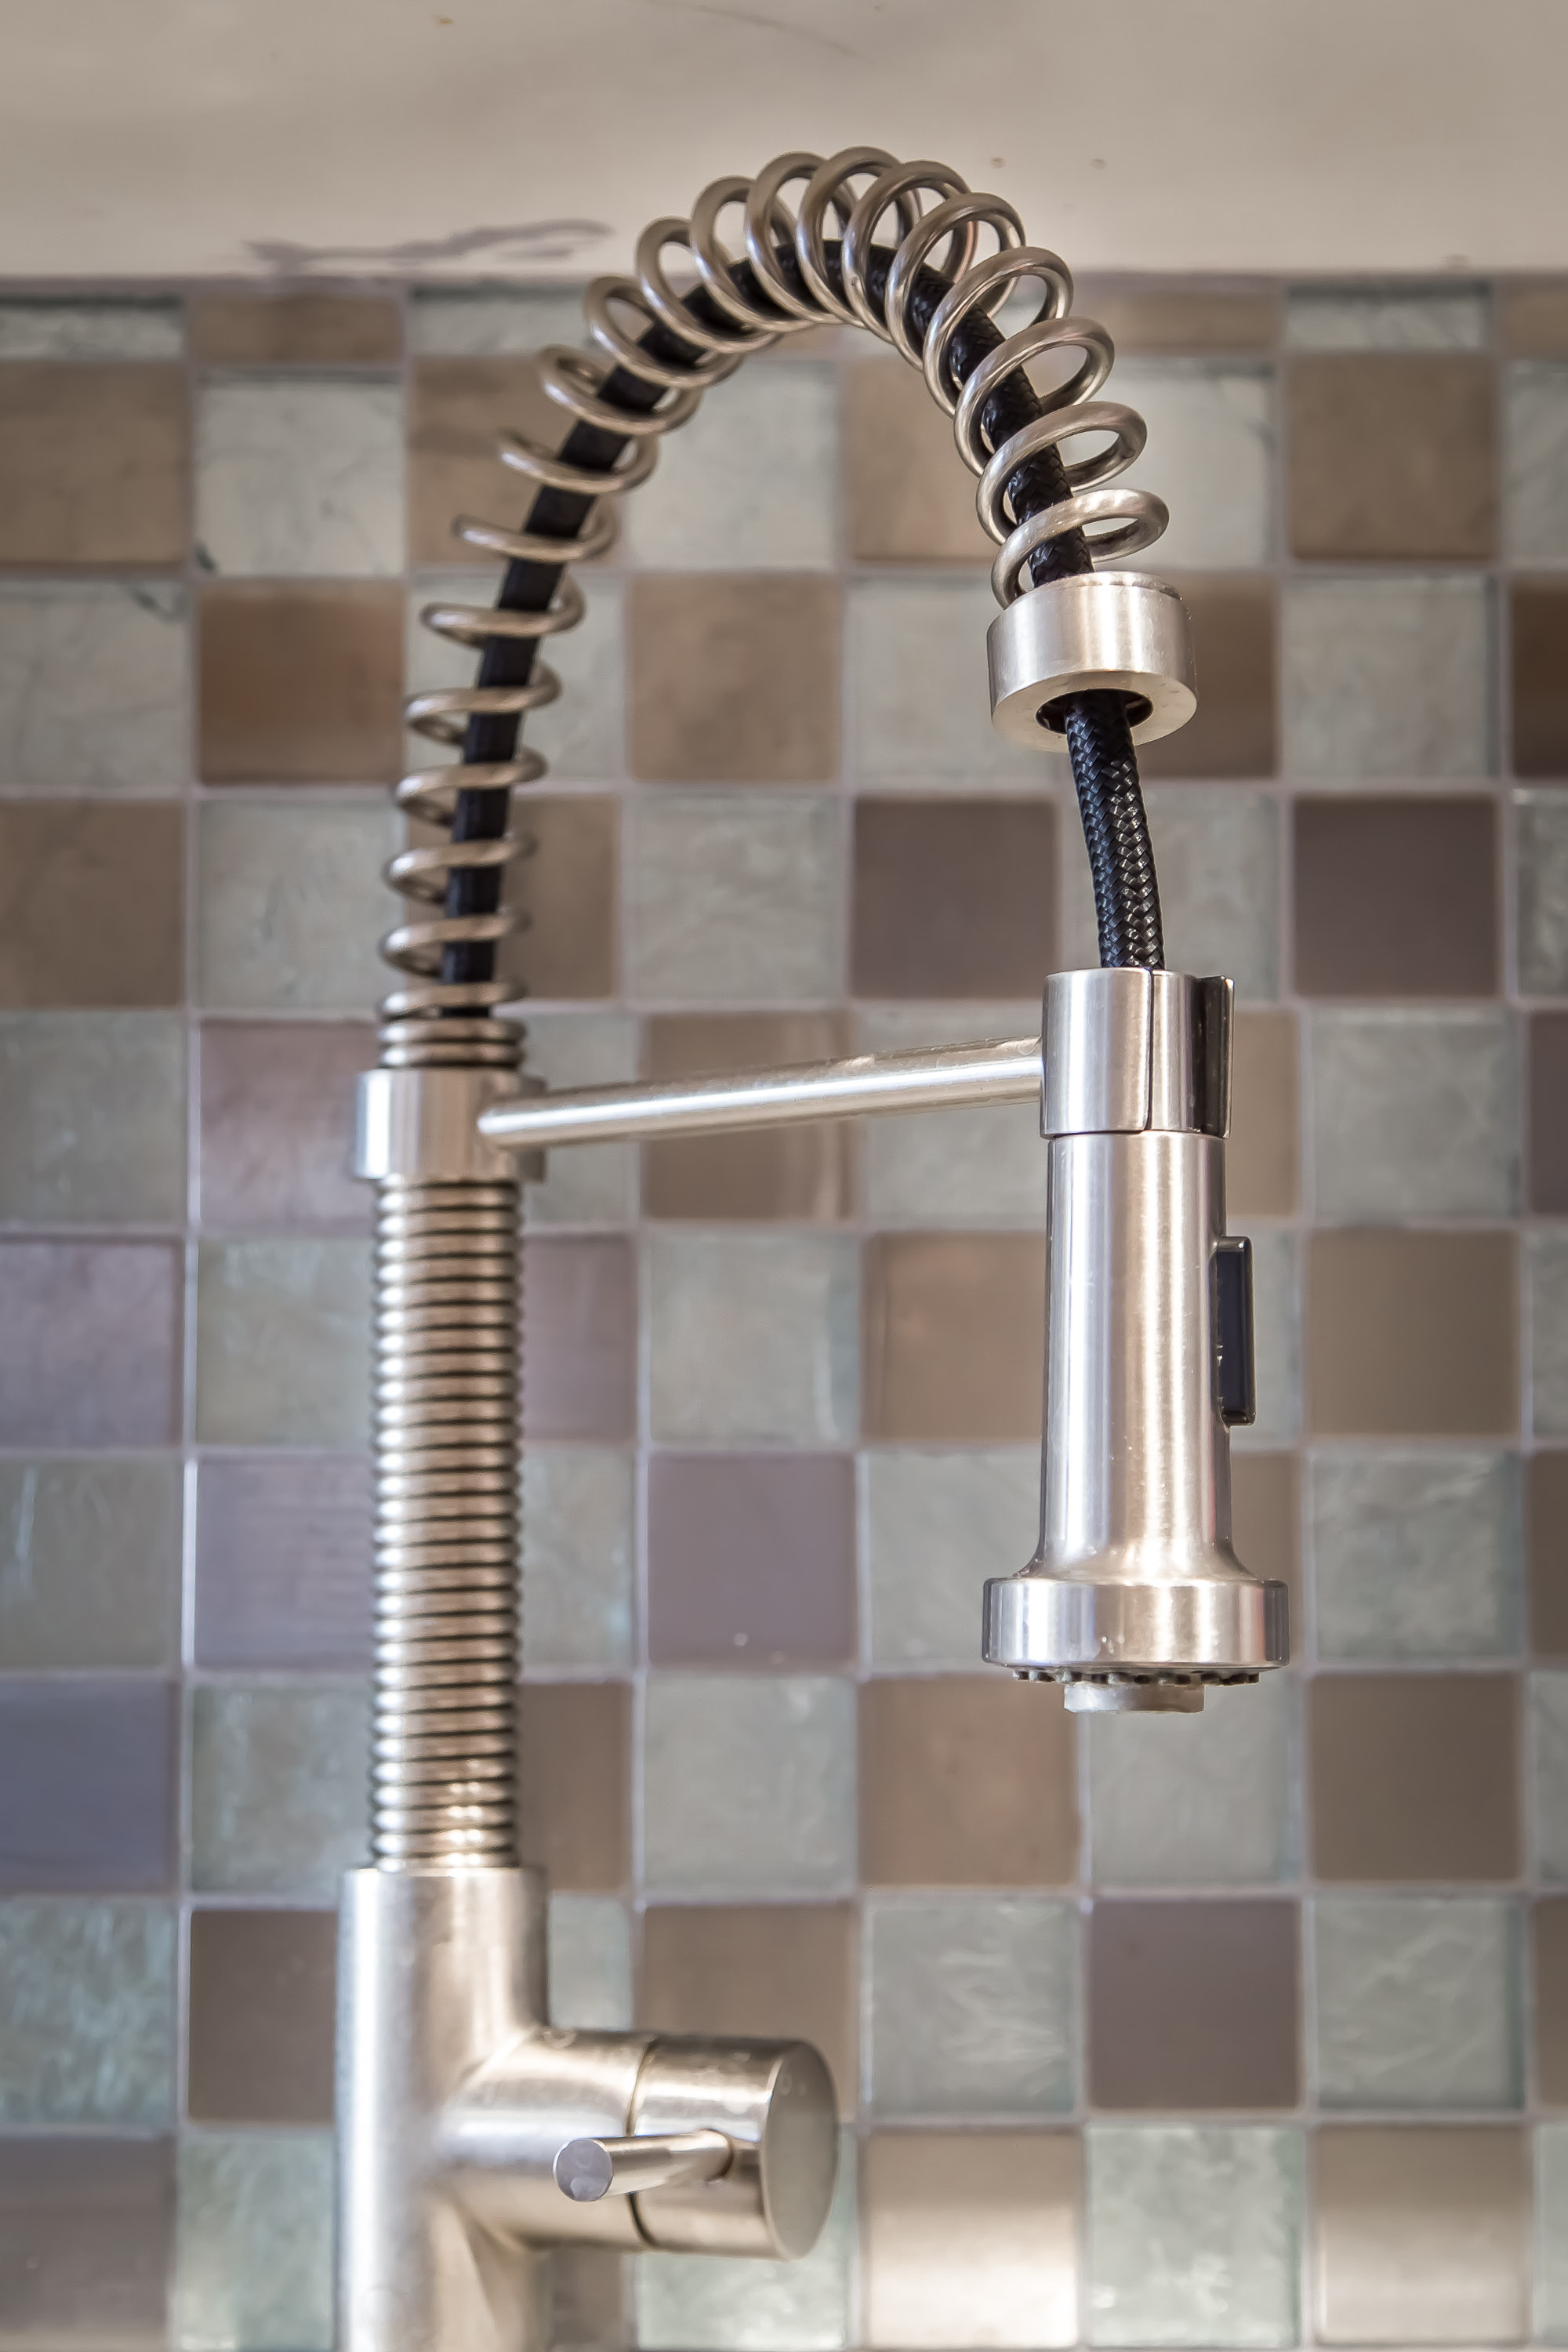 details.kitchenfaucet.jpg